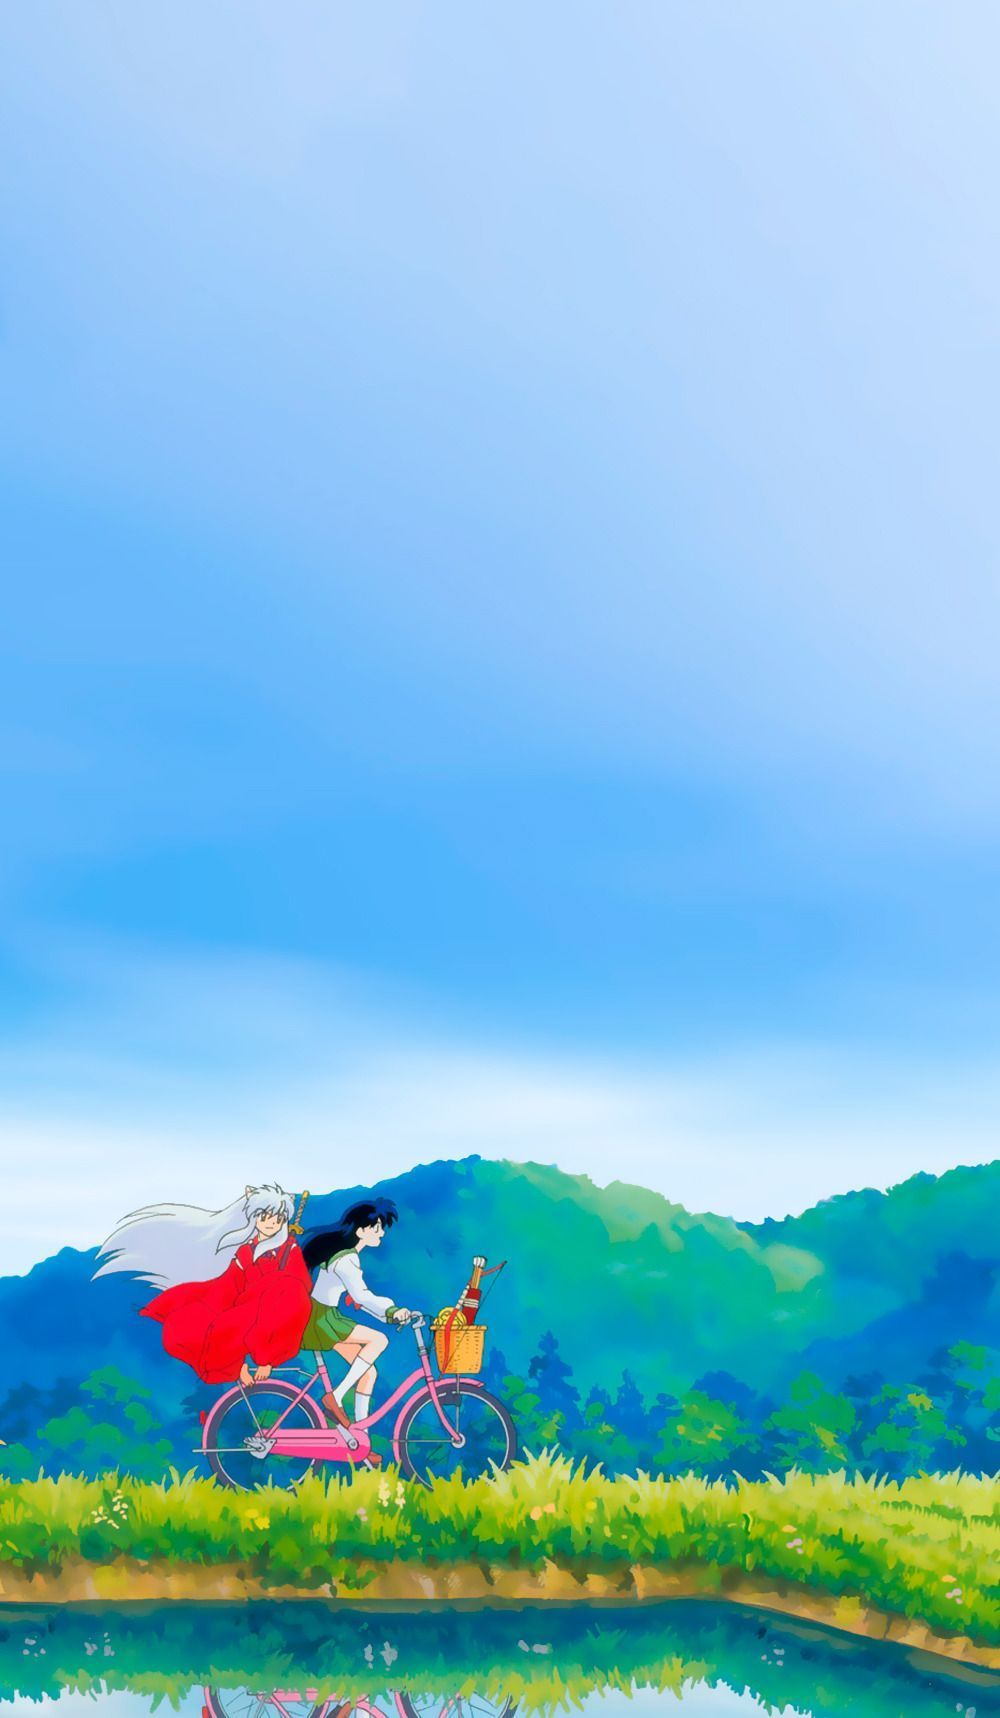 Pin By Ervina Fitriana On Inuyasha In 2020 Anime Wallpaper Anime Background Cute Anime Wallpaper